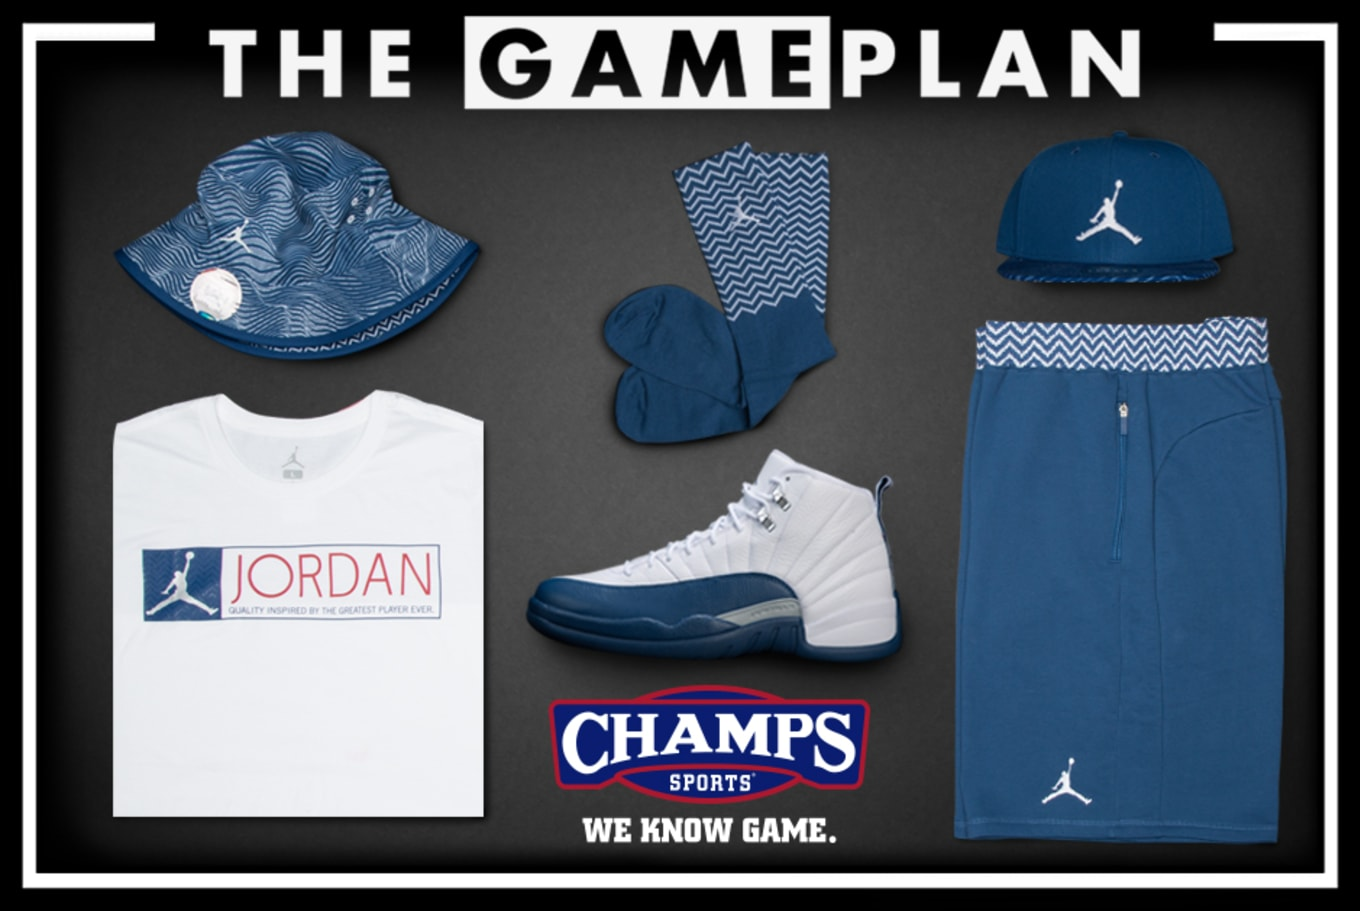 6e4eff04be0 The Game Plan by Champs Sports Presents the Jordan French Blue Collection